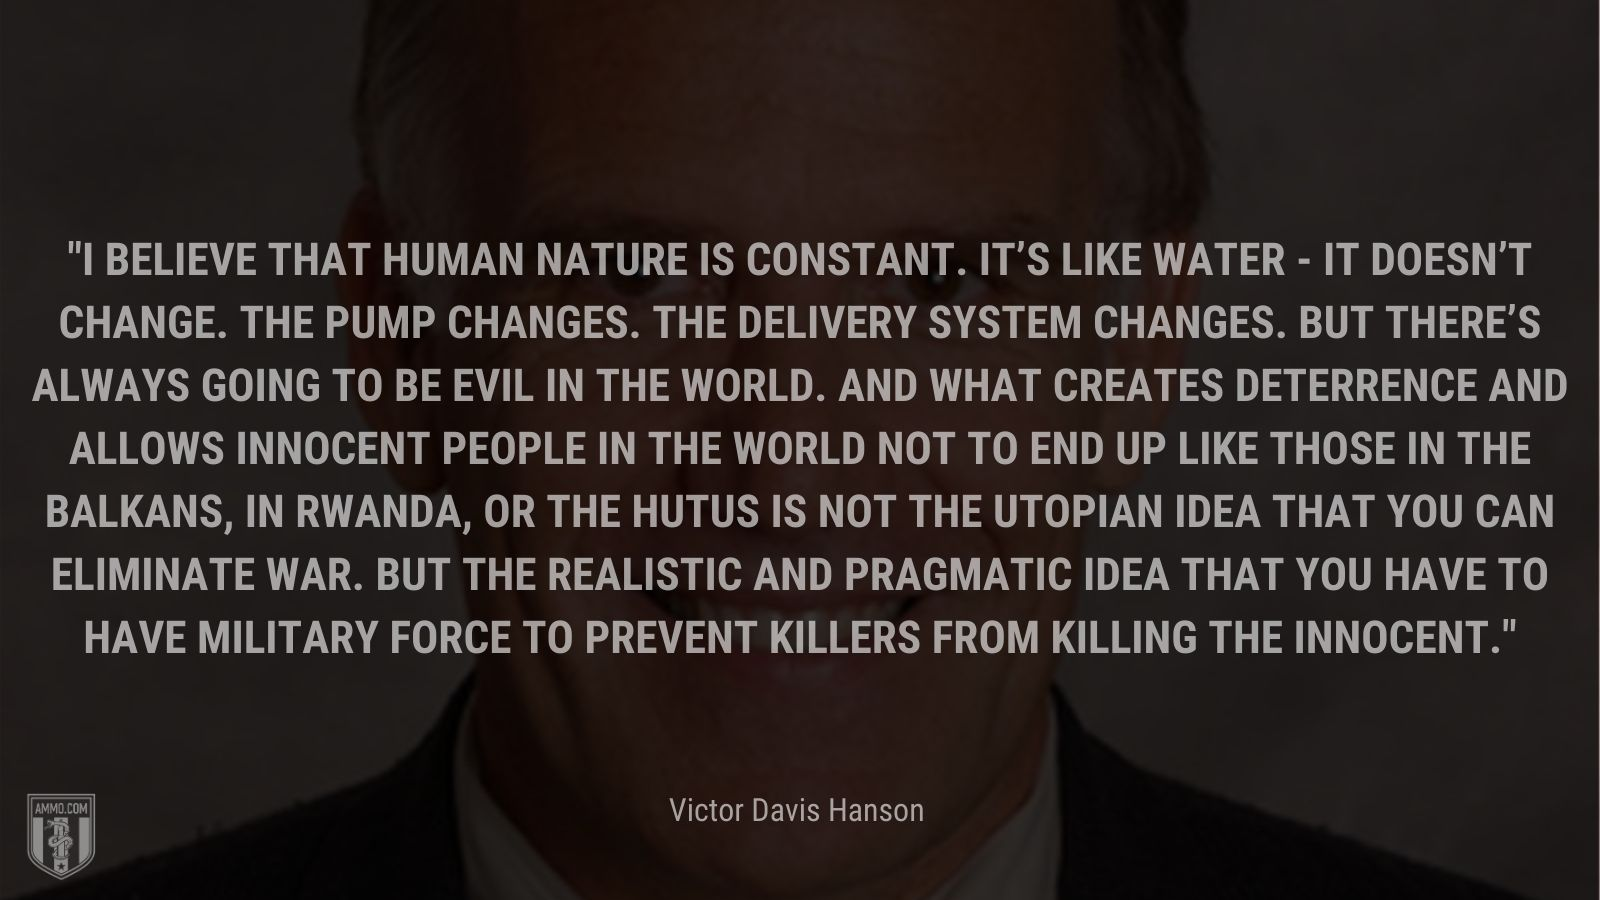 """""""I believe that human nature is constant. It's like water - it doesn't change. The pump changes. The delivery system changes. But there's always going to be evil in the world. And what creates deterrence and allows innocent people in the world not to end up like those in the Balkans, in Rwanda, or the Hutus is not the utopian idea that you can eliminate war. But the realistic and pragmatic idea that you have to have military force to prevent killers from killing the innocent."""" - Victor Davis Hanson"""